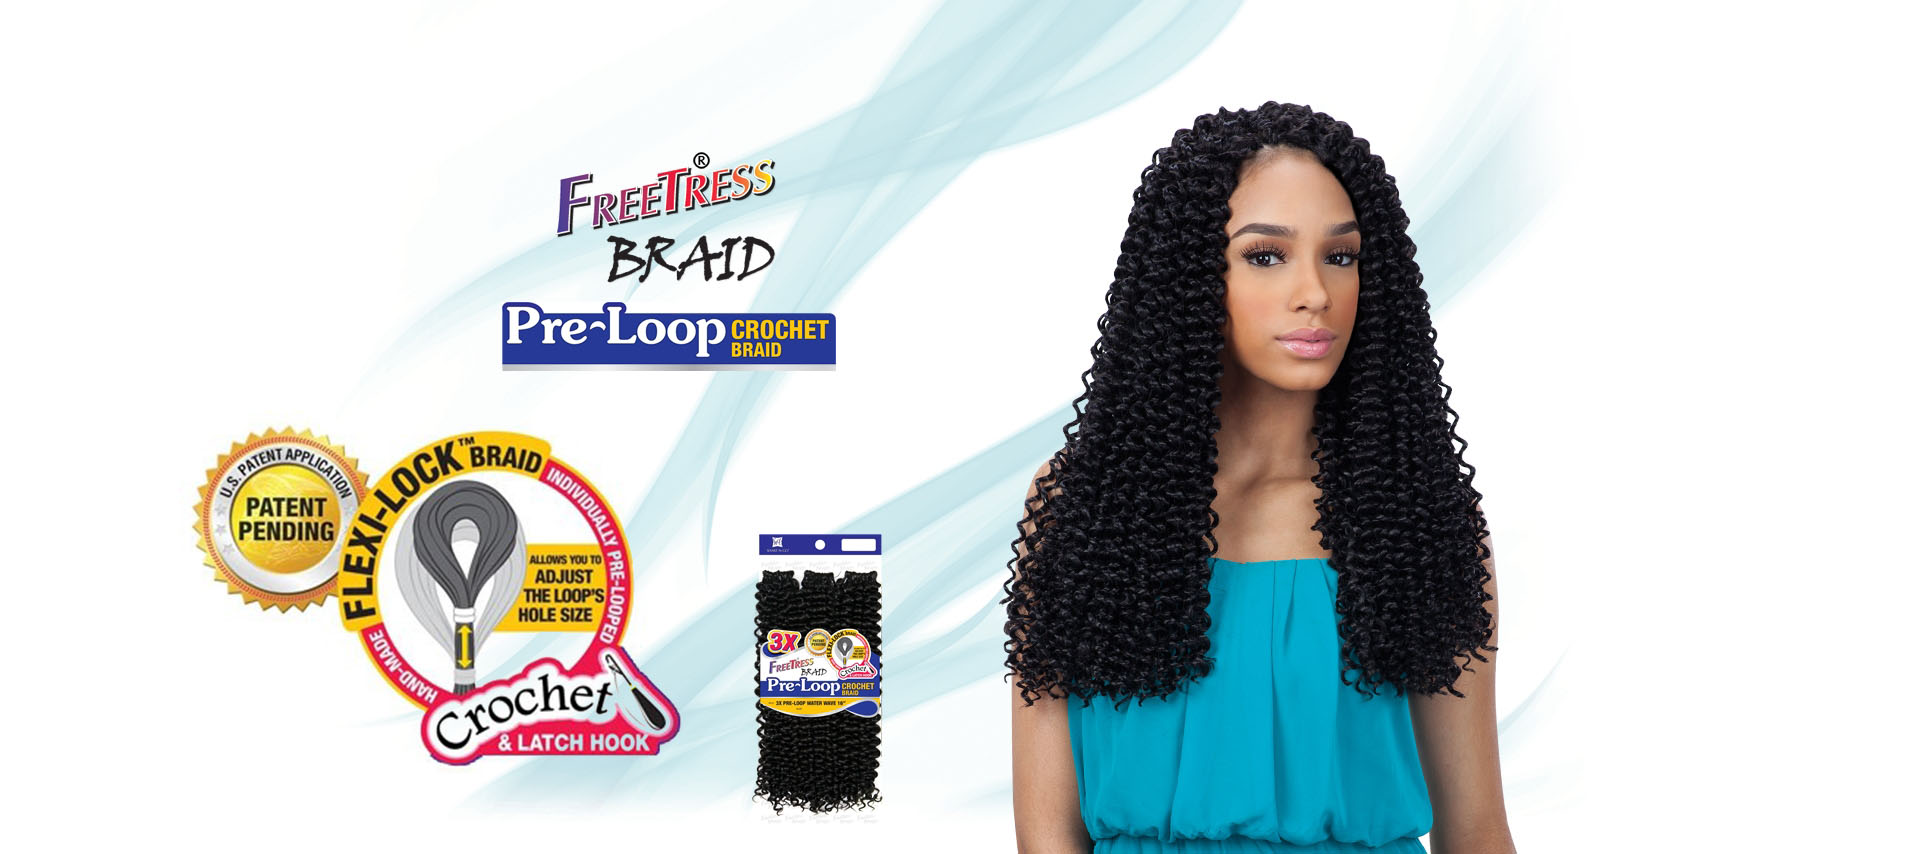 FREETRESS PRE-LOOP WATER WAVE CROCHET BRAID